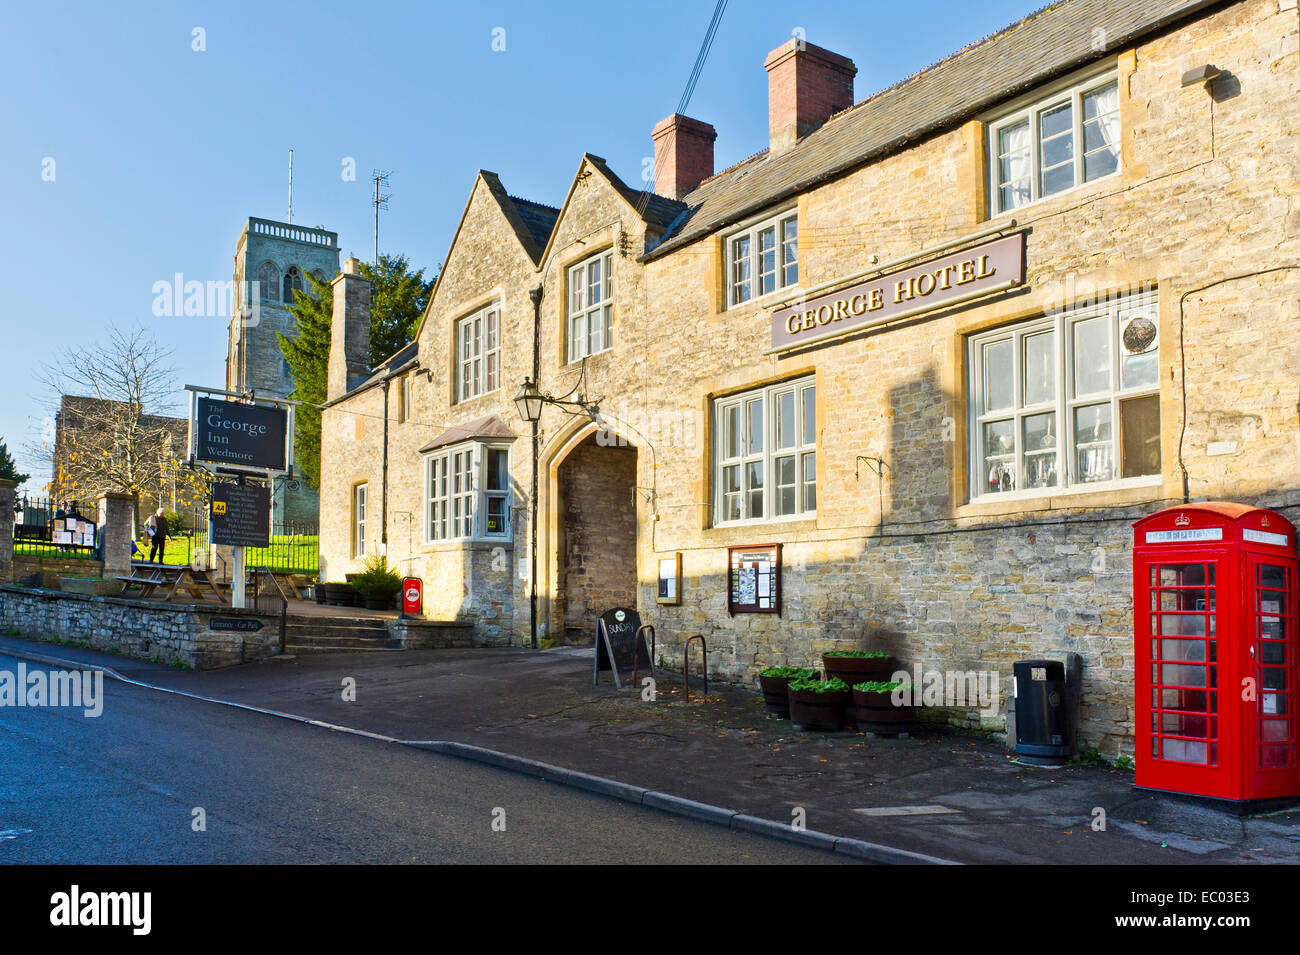 The village of Wedmore, Somerset, St Mary's Church and the George Hotel. - Stock Image